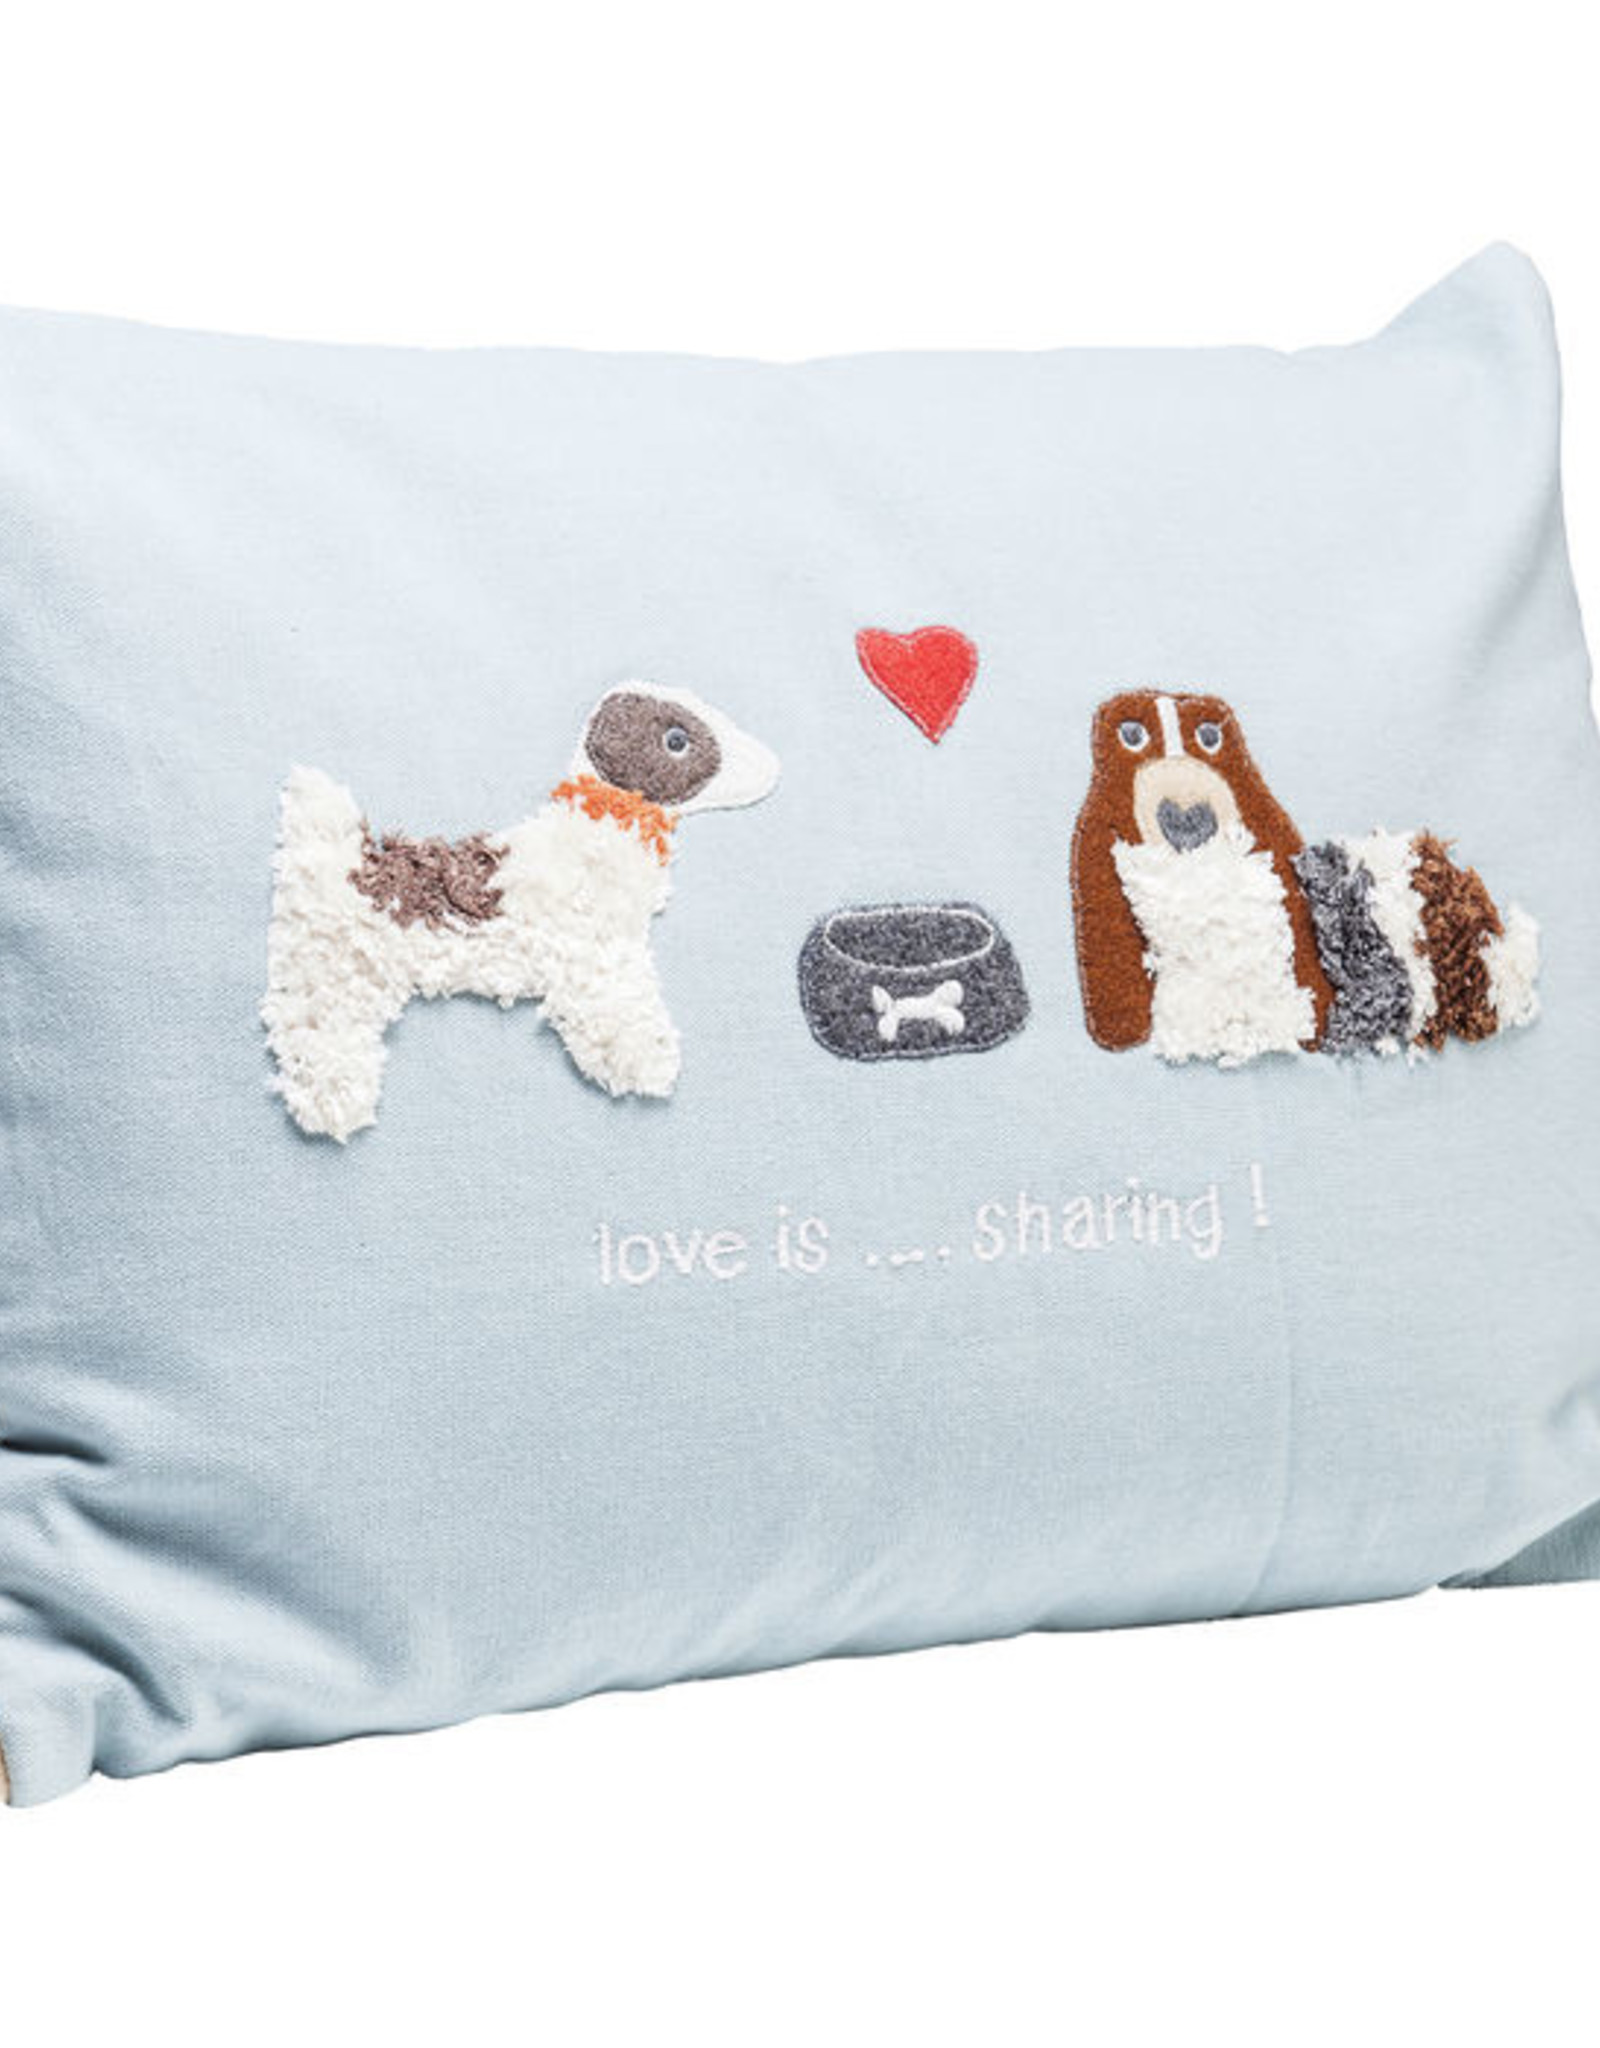 KARE DESIGN Cushion Fairytale Love 40x30cm